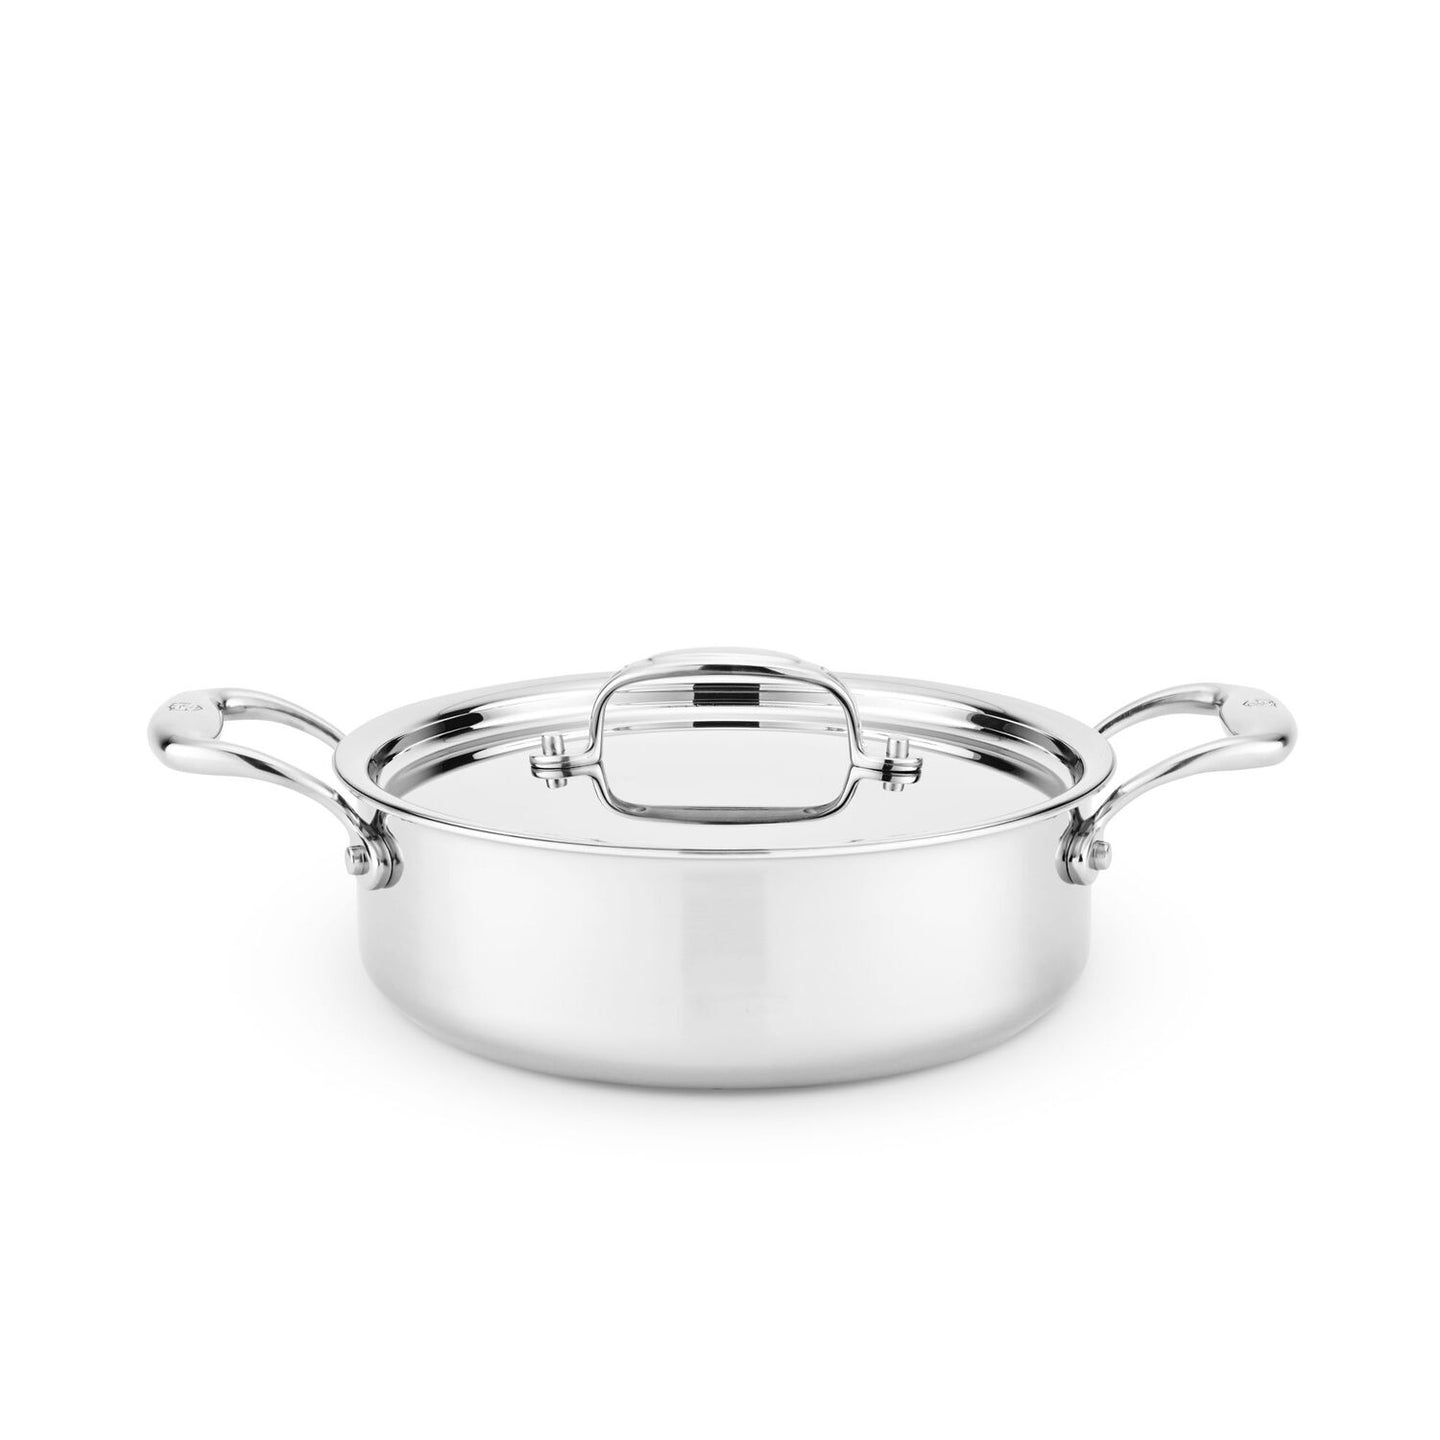 2.5 Quart Sauteuse with Lid